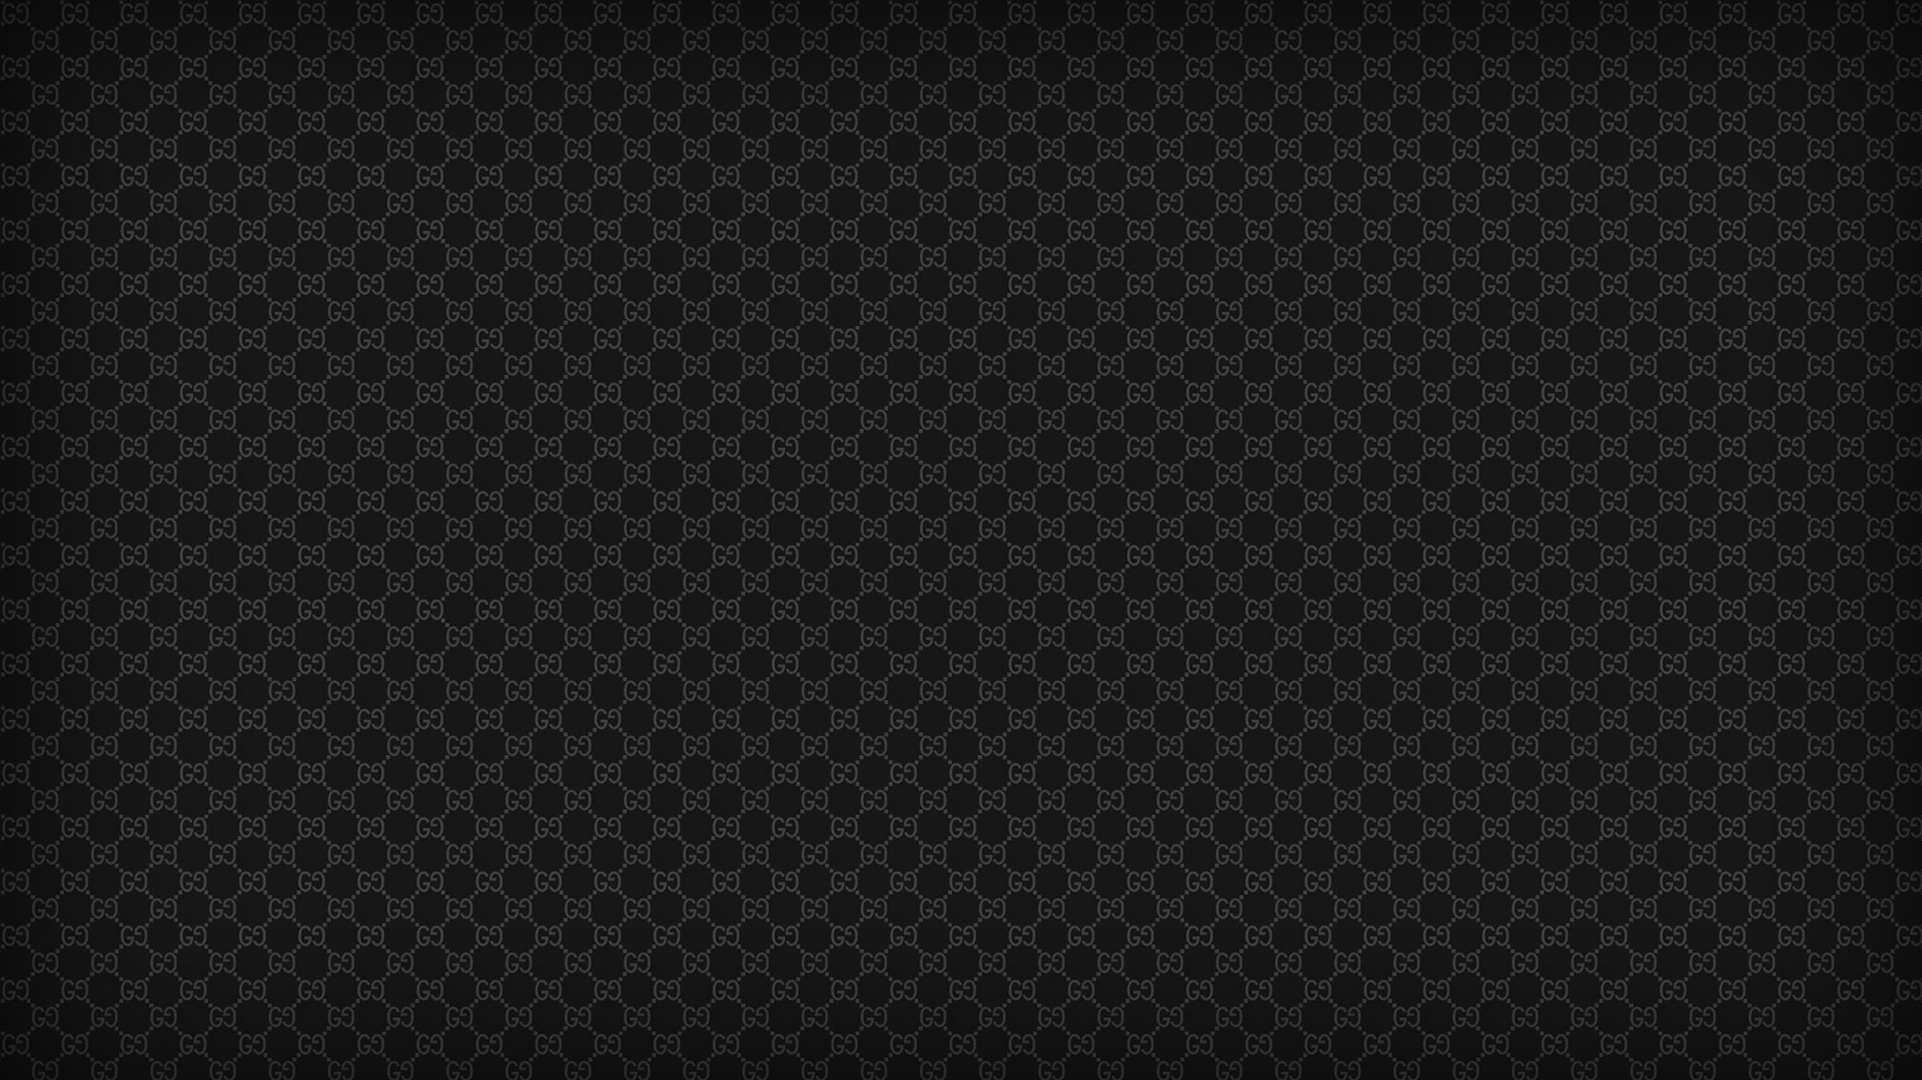 Black Wallpaper Full HD   Wallpaper High Definition High Quality 1922x1080